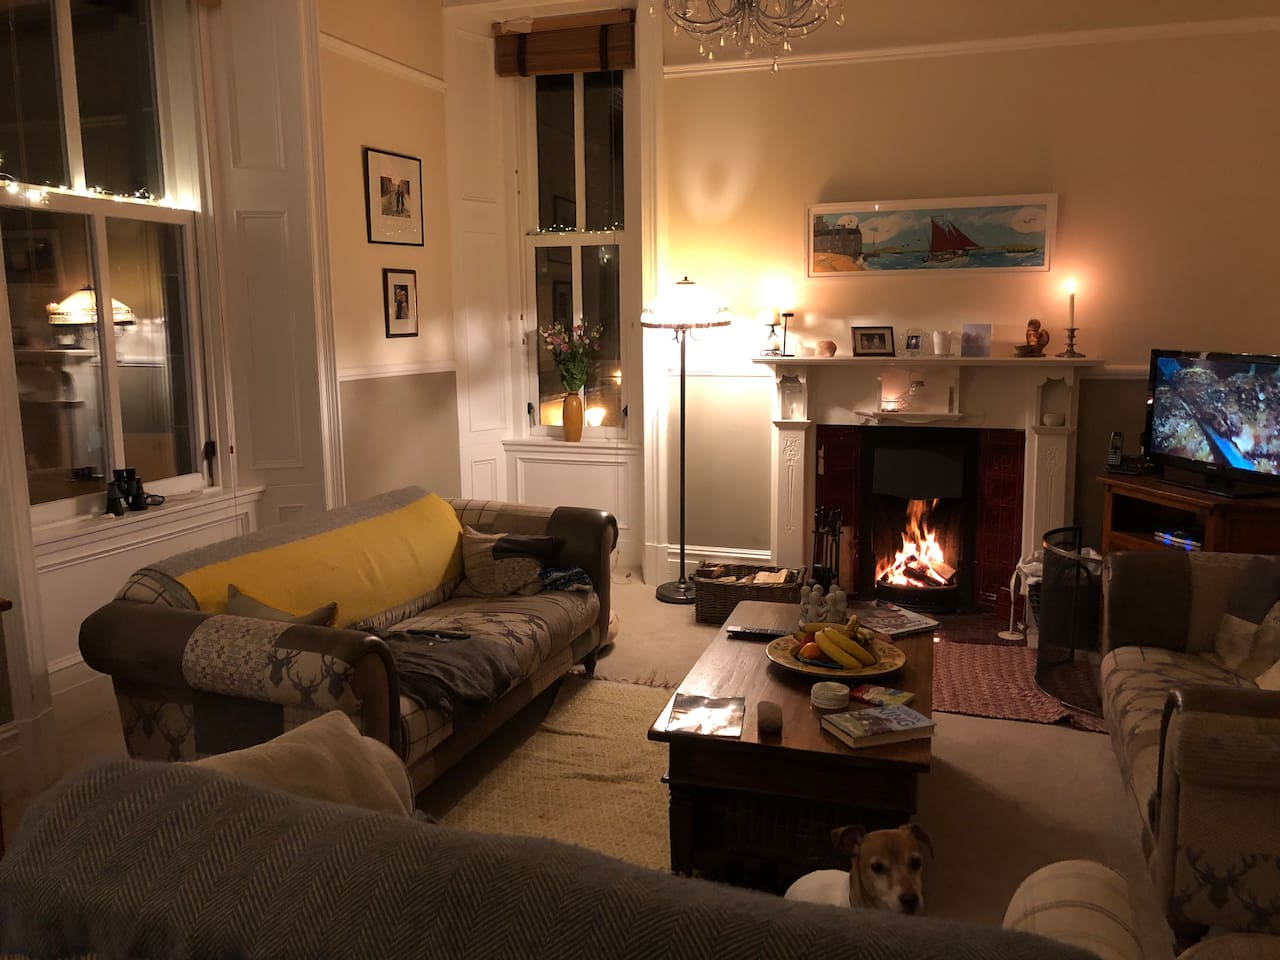 This is the living area with open fire and stunning views across to Bressay. Guests are invited to join us for a glass of wine in the evening or if they just wish a quiet place to read/work during the day.